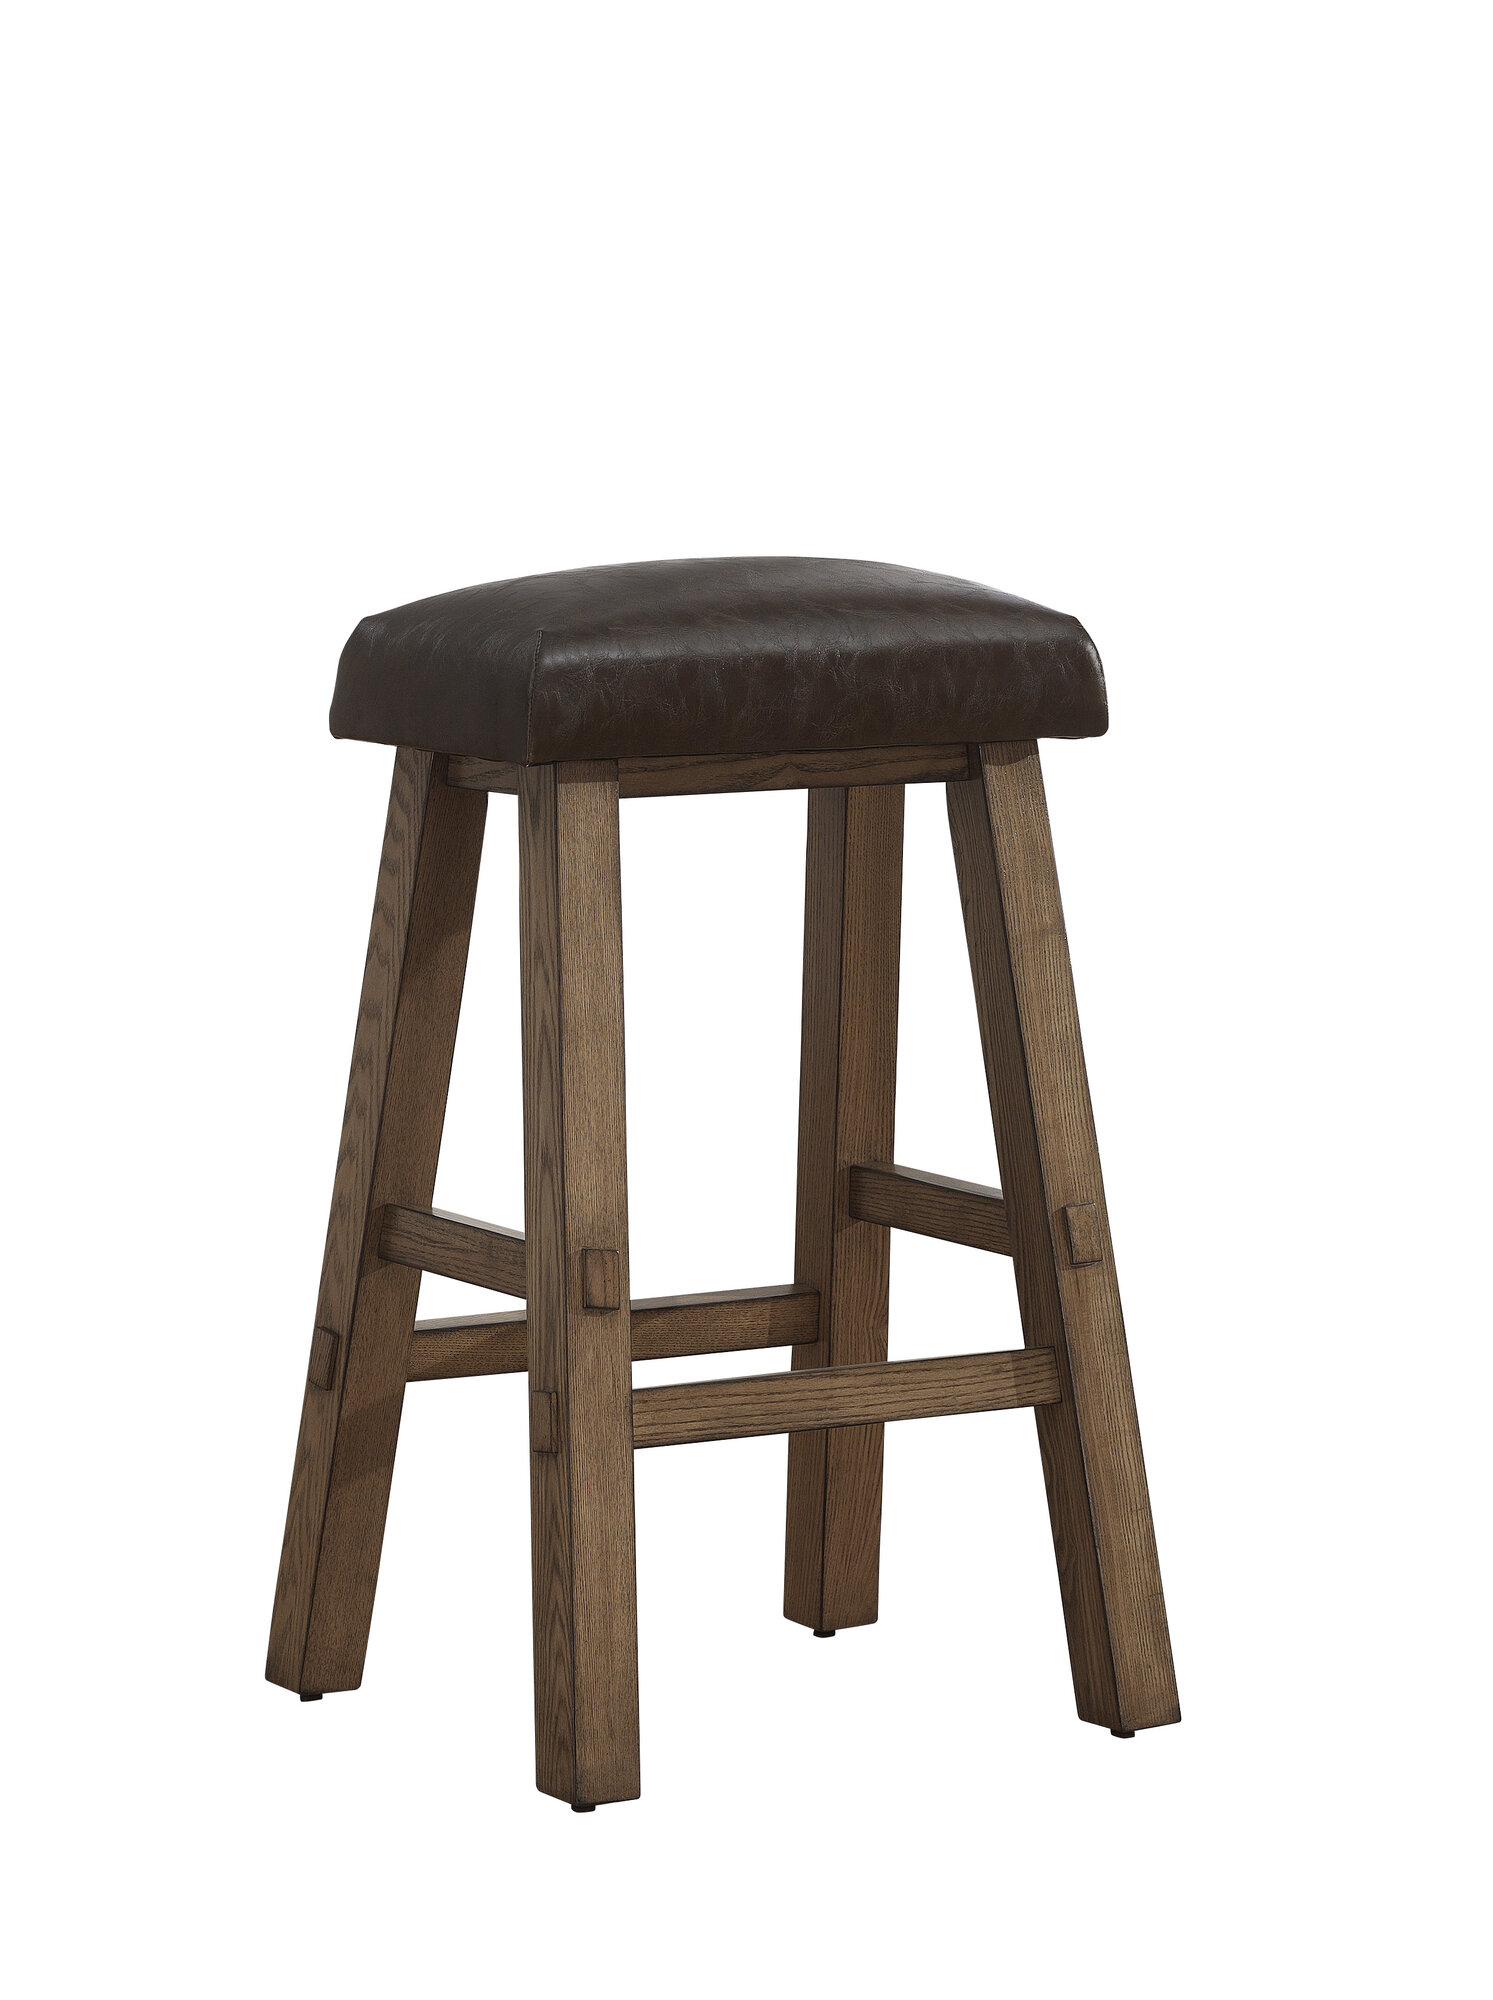 American Heritage Saddle 30quot Bar Stool with Cushion : 1 from ebay.com size 1493 x 2000 jpeg 216kB